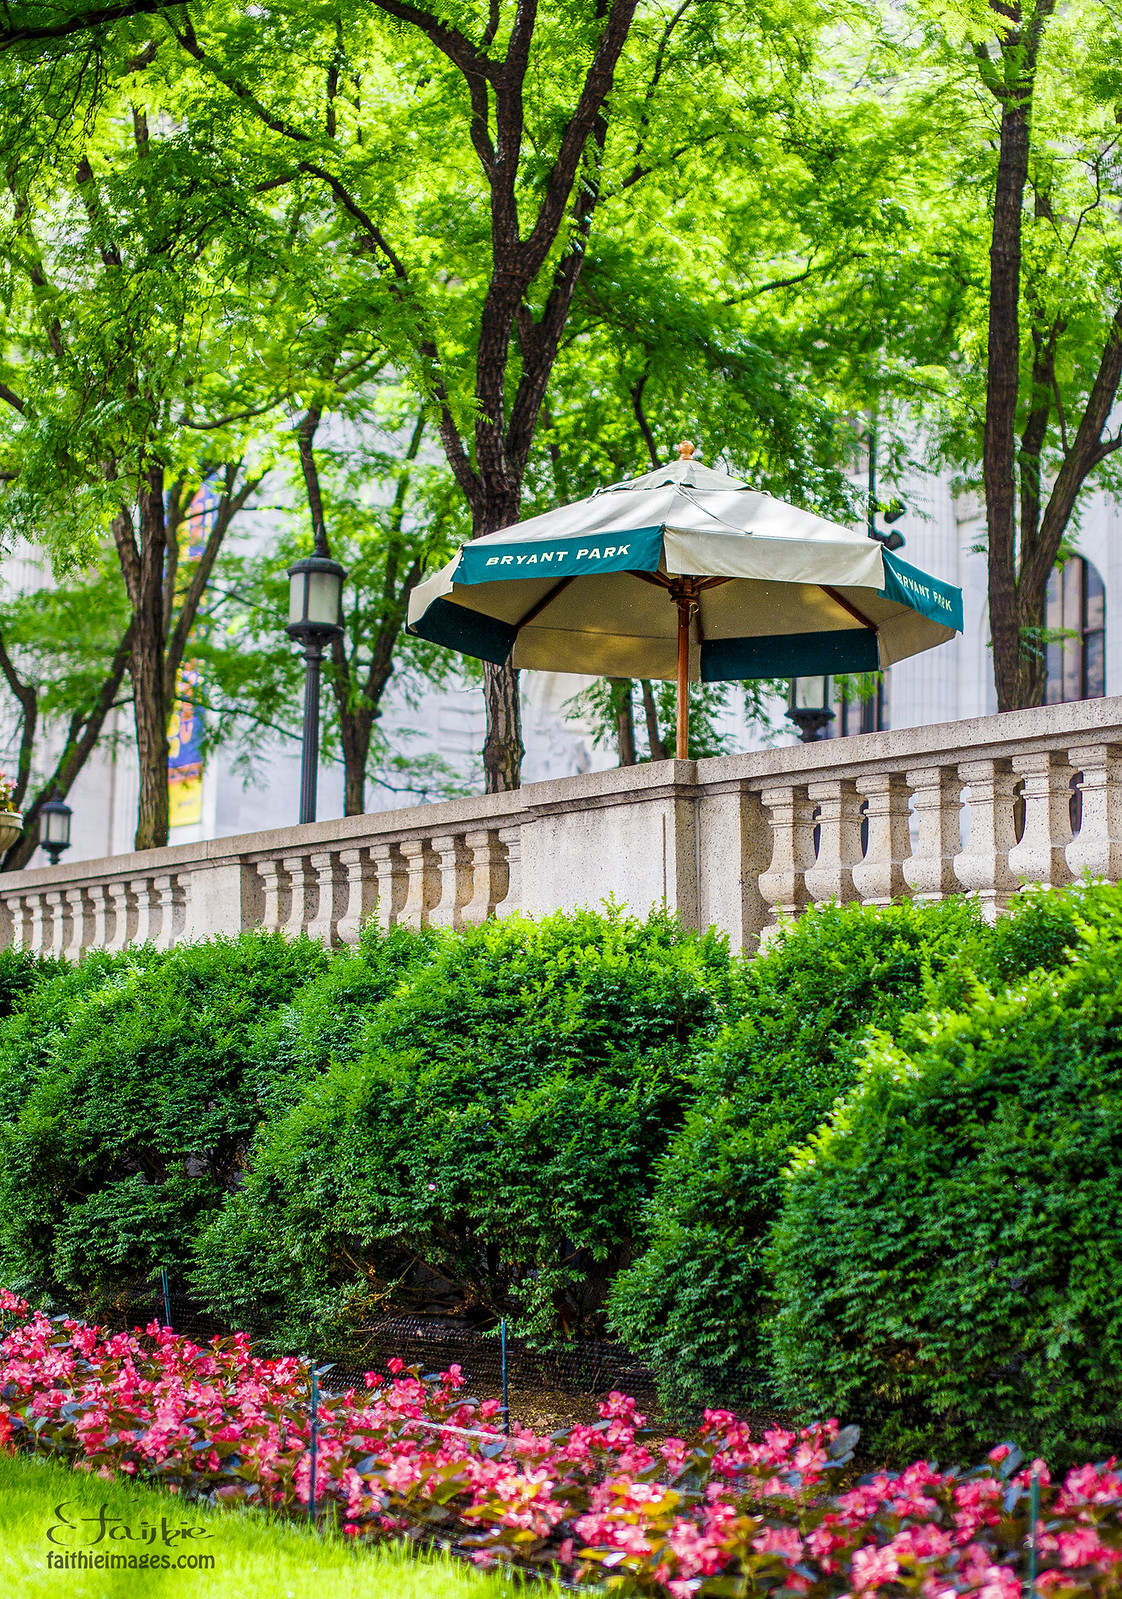 The cosy charm of Bryant Park